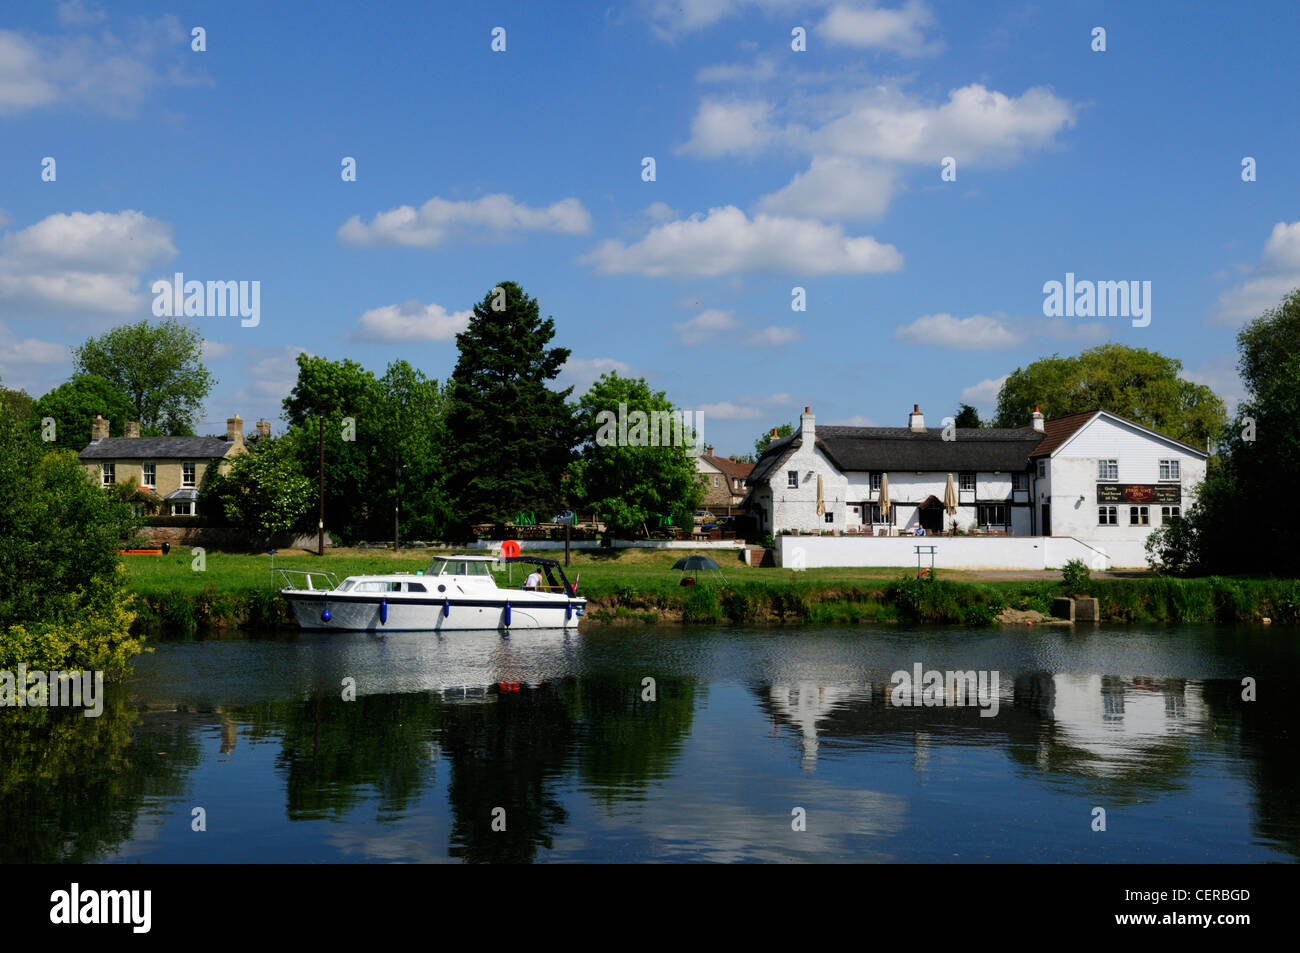 The Old ferry Boat Inn, England's oldest inn, by the River Great Ouse in Holywell. - Stock Image